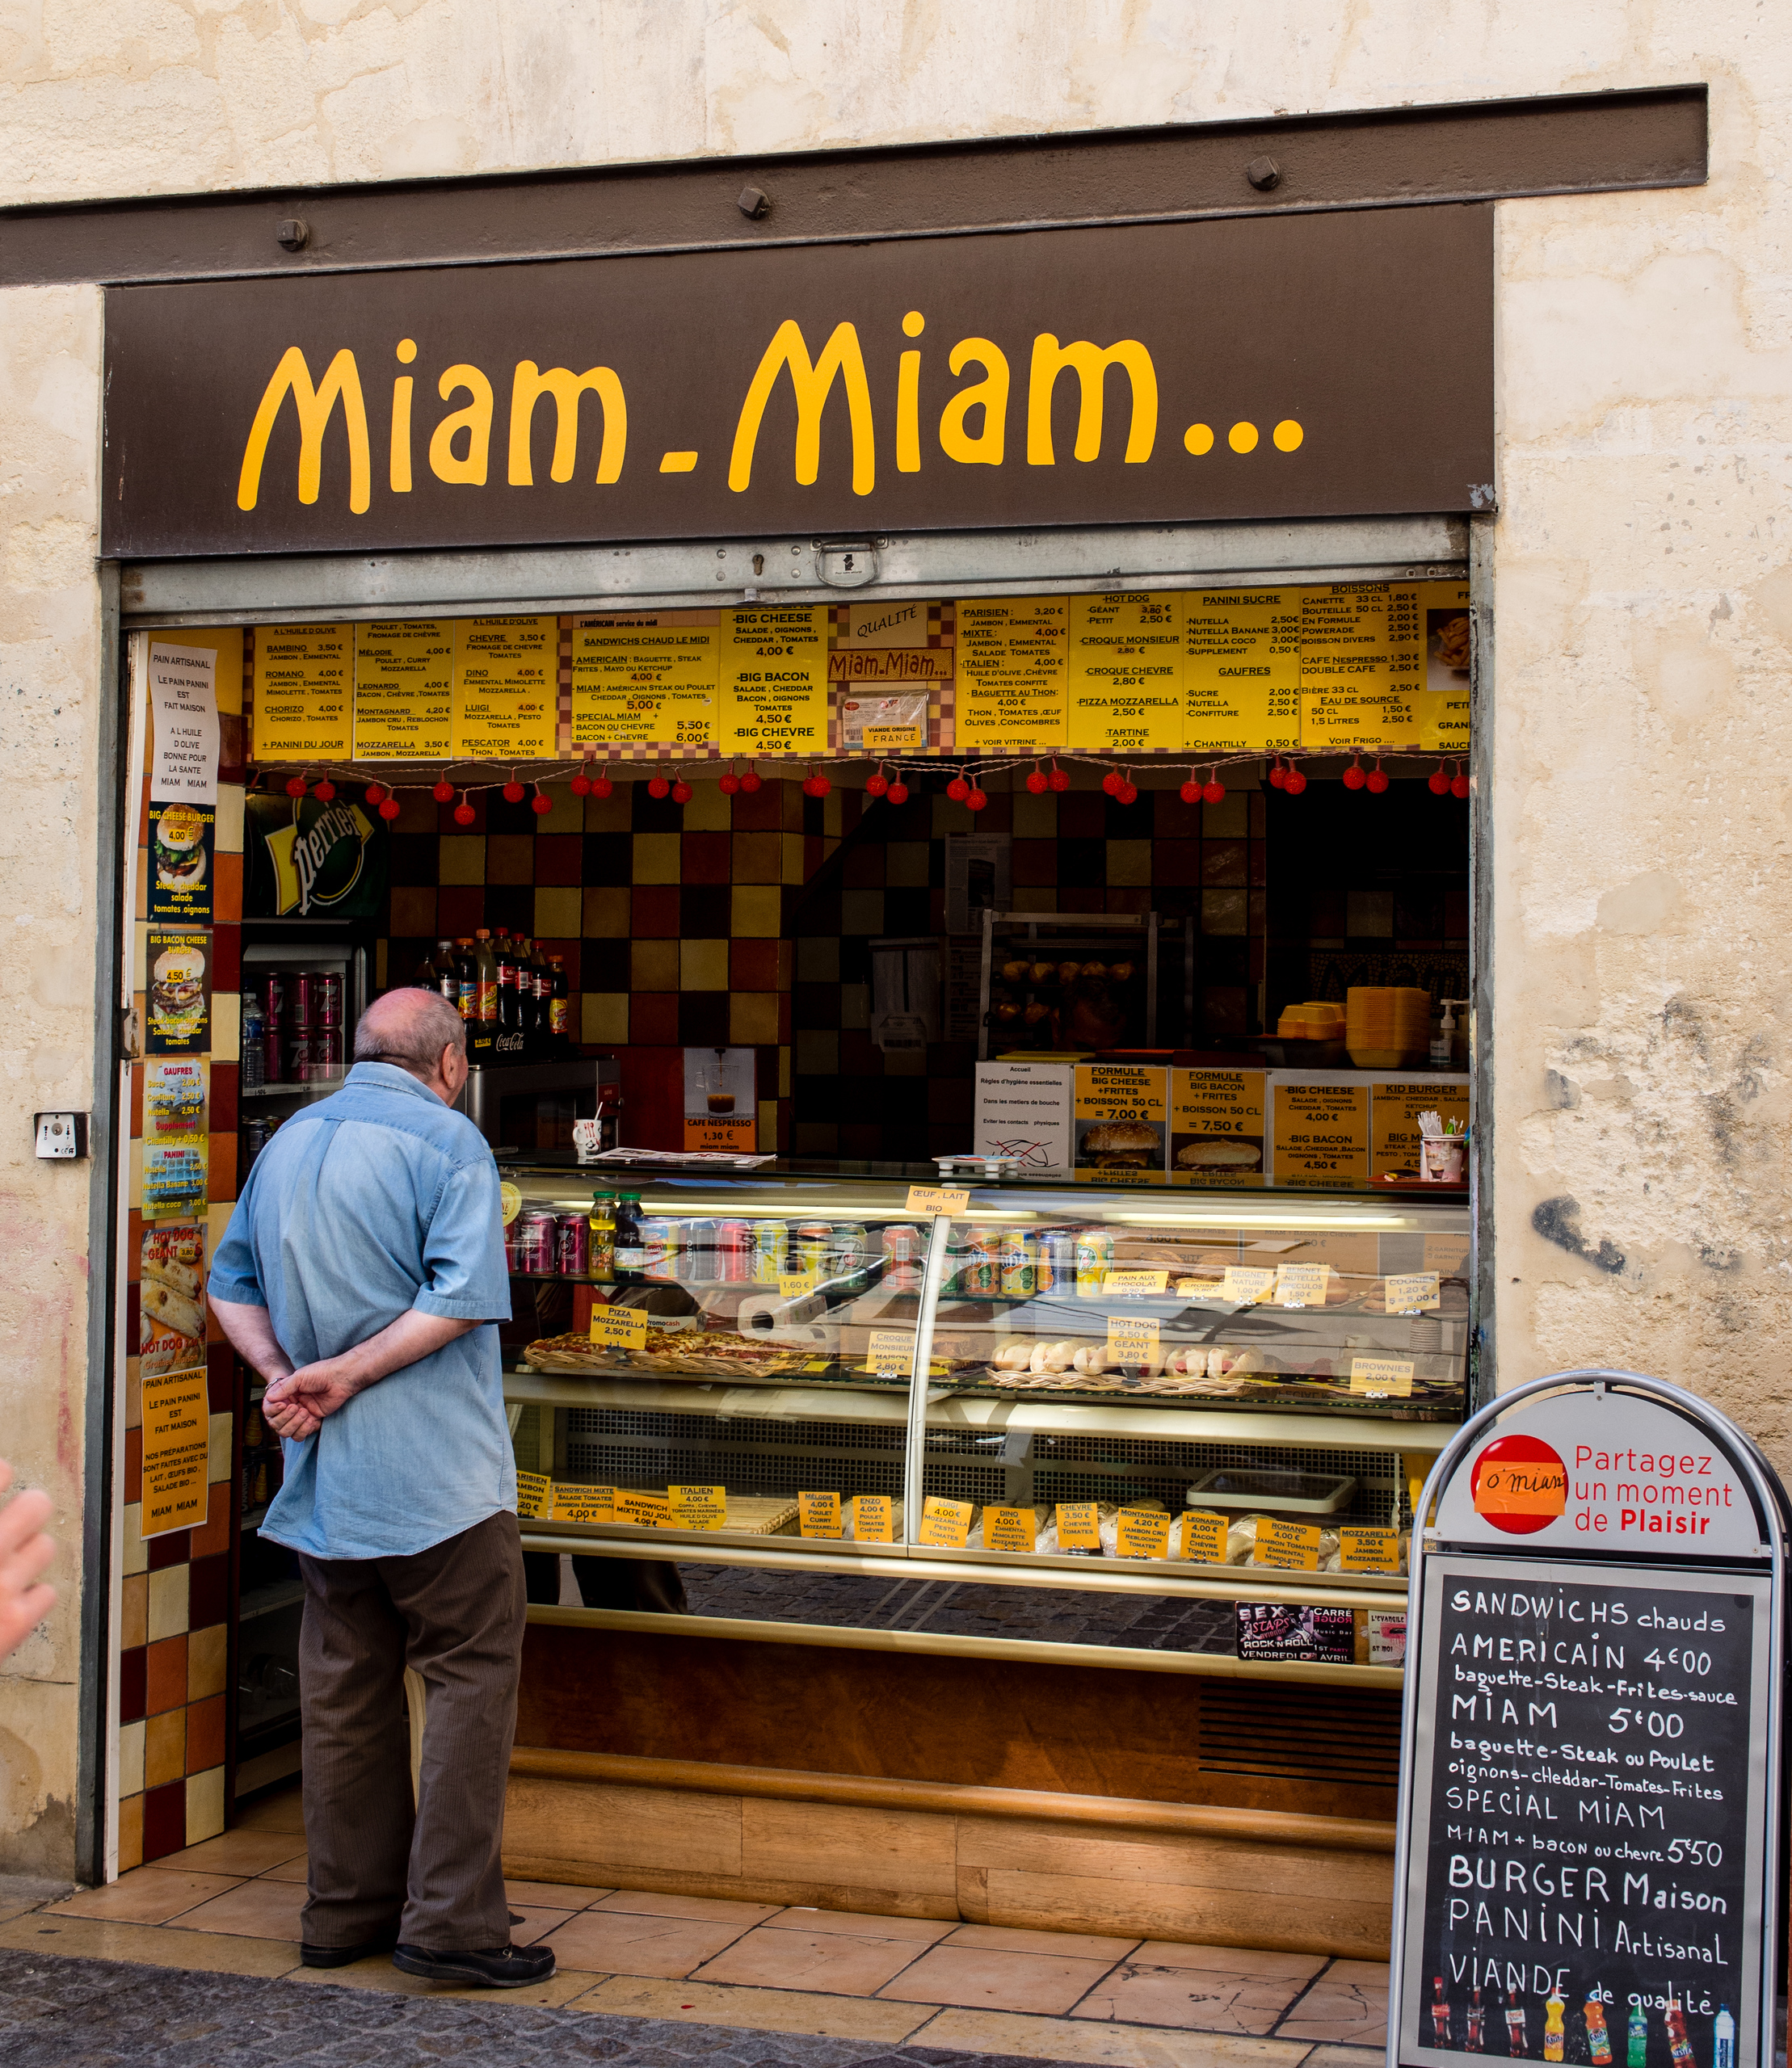 Miam Miam in the historic and graceful city of Avignon, Provence, France.